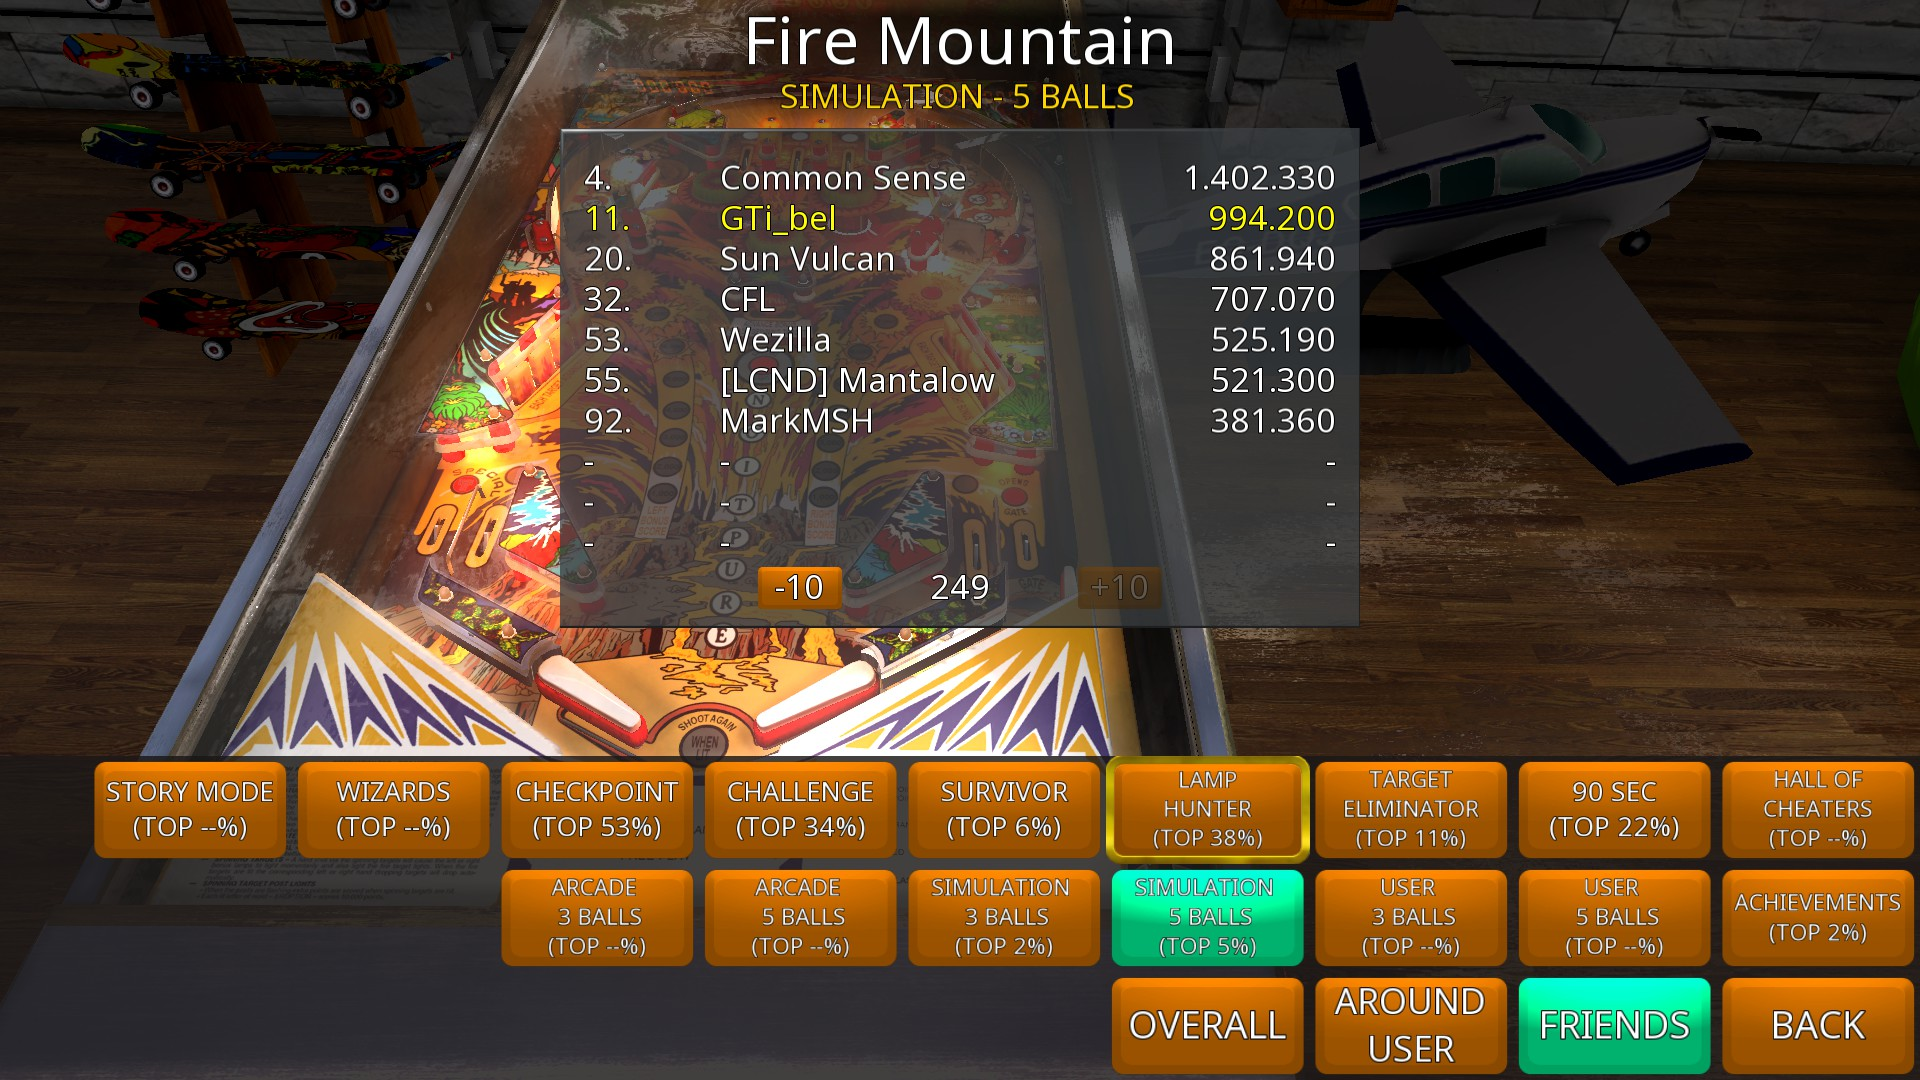 GTibel: Zaccaria Pinball: Fire Mountain [5 balls] (PC) 994,200 points on 2018-08-13 07:28:13